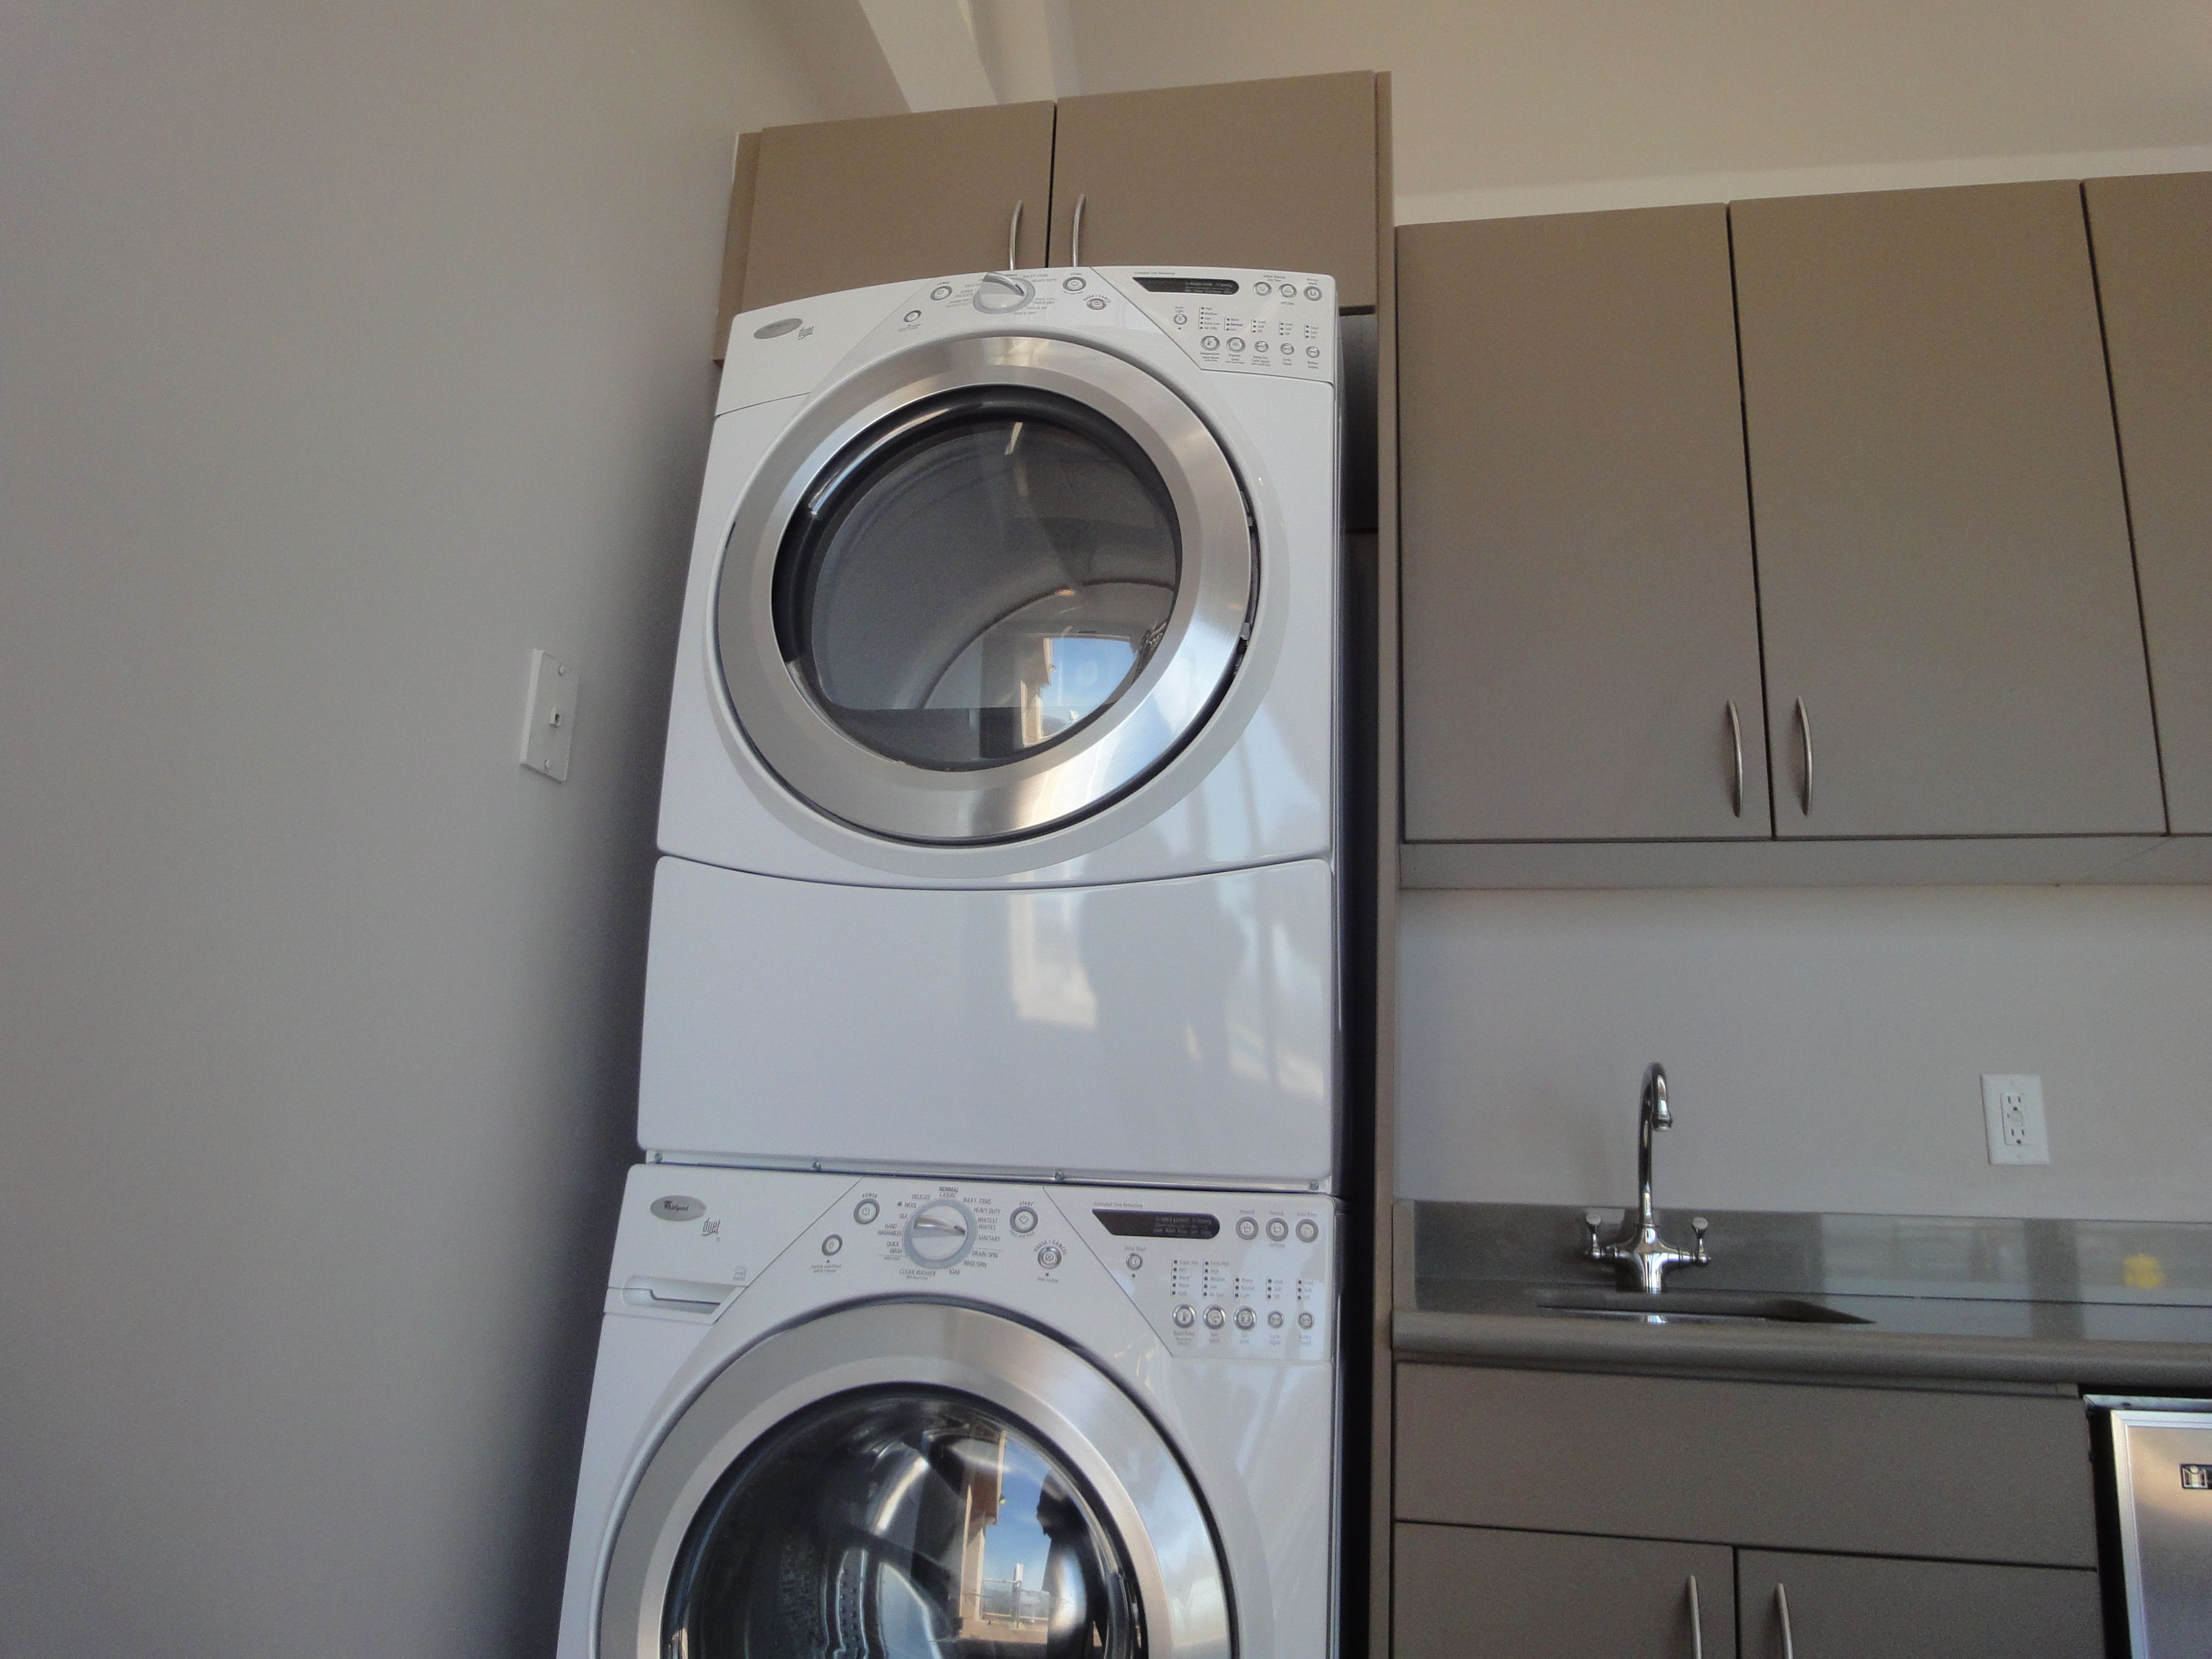 Stunning masters laundry ideas building plans online 60166 for Masters laundry